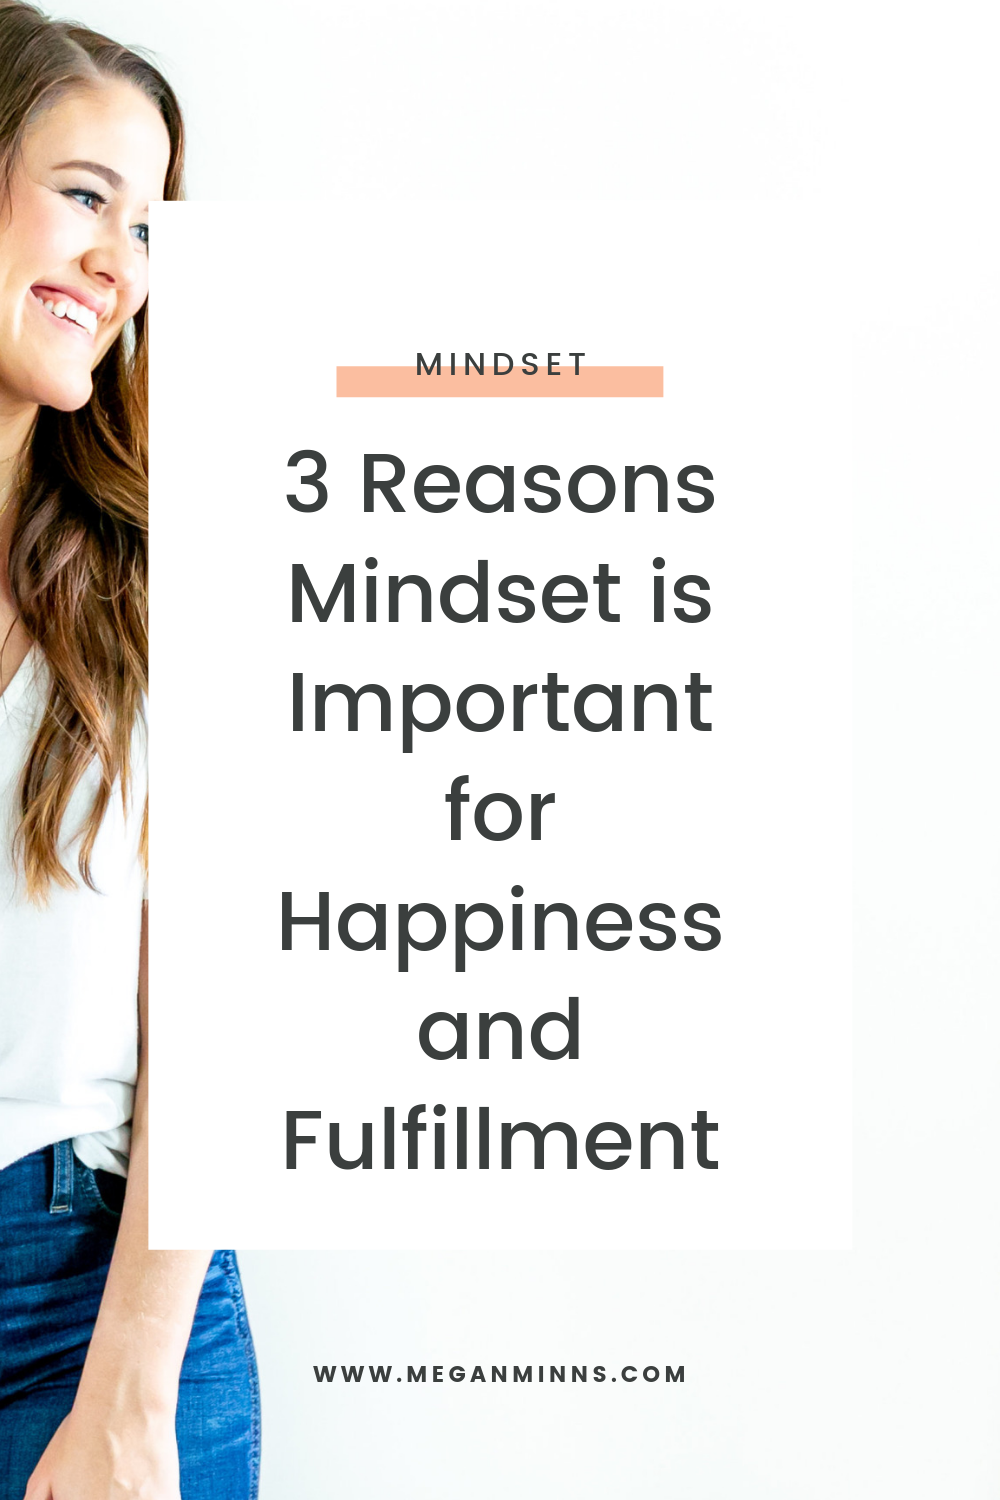 TPL 027: 3 Reasons Mindset is Important for Happiness and Fulfillment  In this episode, I'll share three of the biggest reasons mindset is important for your happiness and fulfillment. Focussing on your mindset is foundational to the rest of your life, how you feel, and how you respond to things happening around you. Mindset has truly changed my life, and I'm excited to share how you can start focussing on your own mindset to change yours, too.  READ THE FULL BLOG POST ➡️ https://meganminns.com/blog/why-mindset-is-important